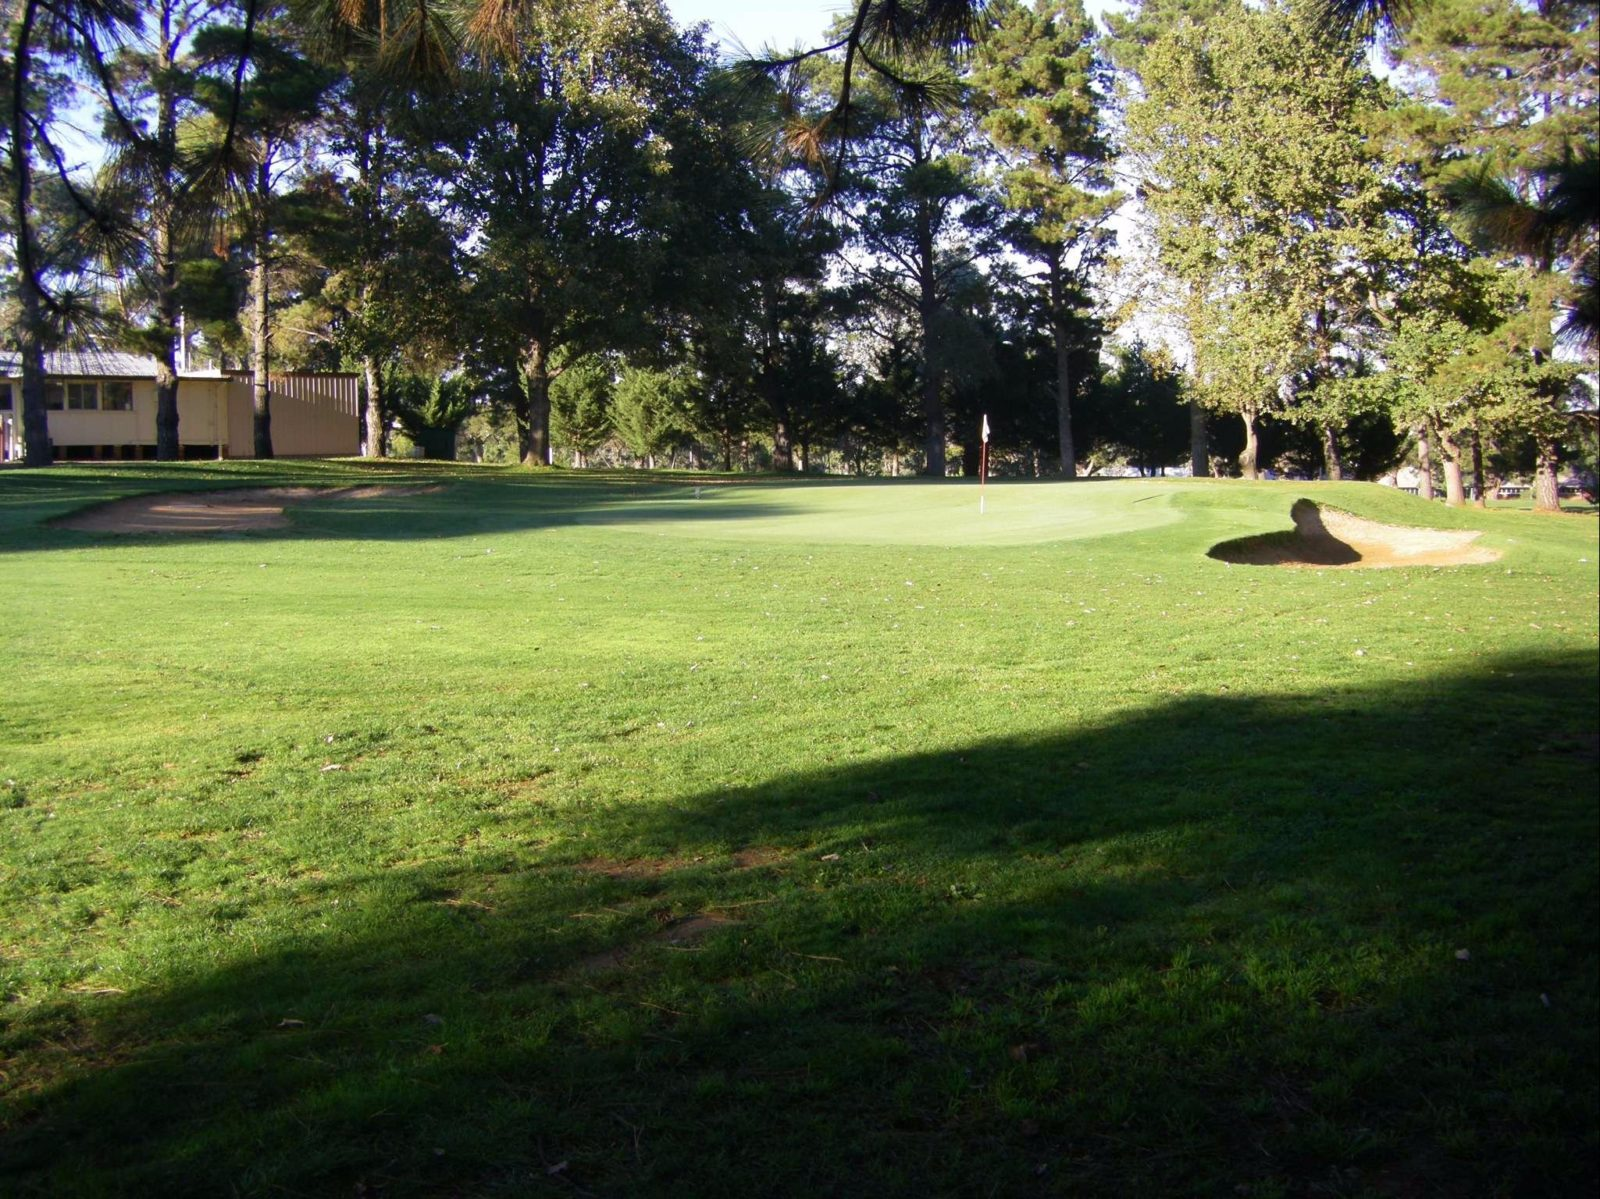 13th hole surrounded by tall trees